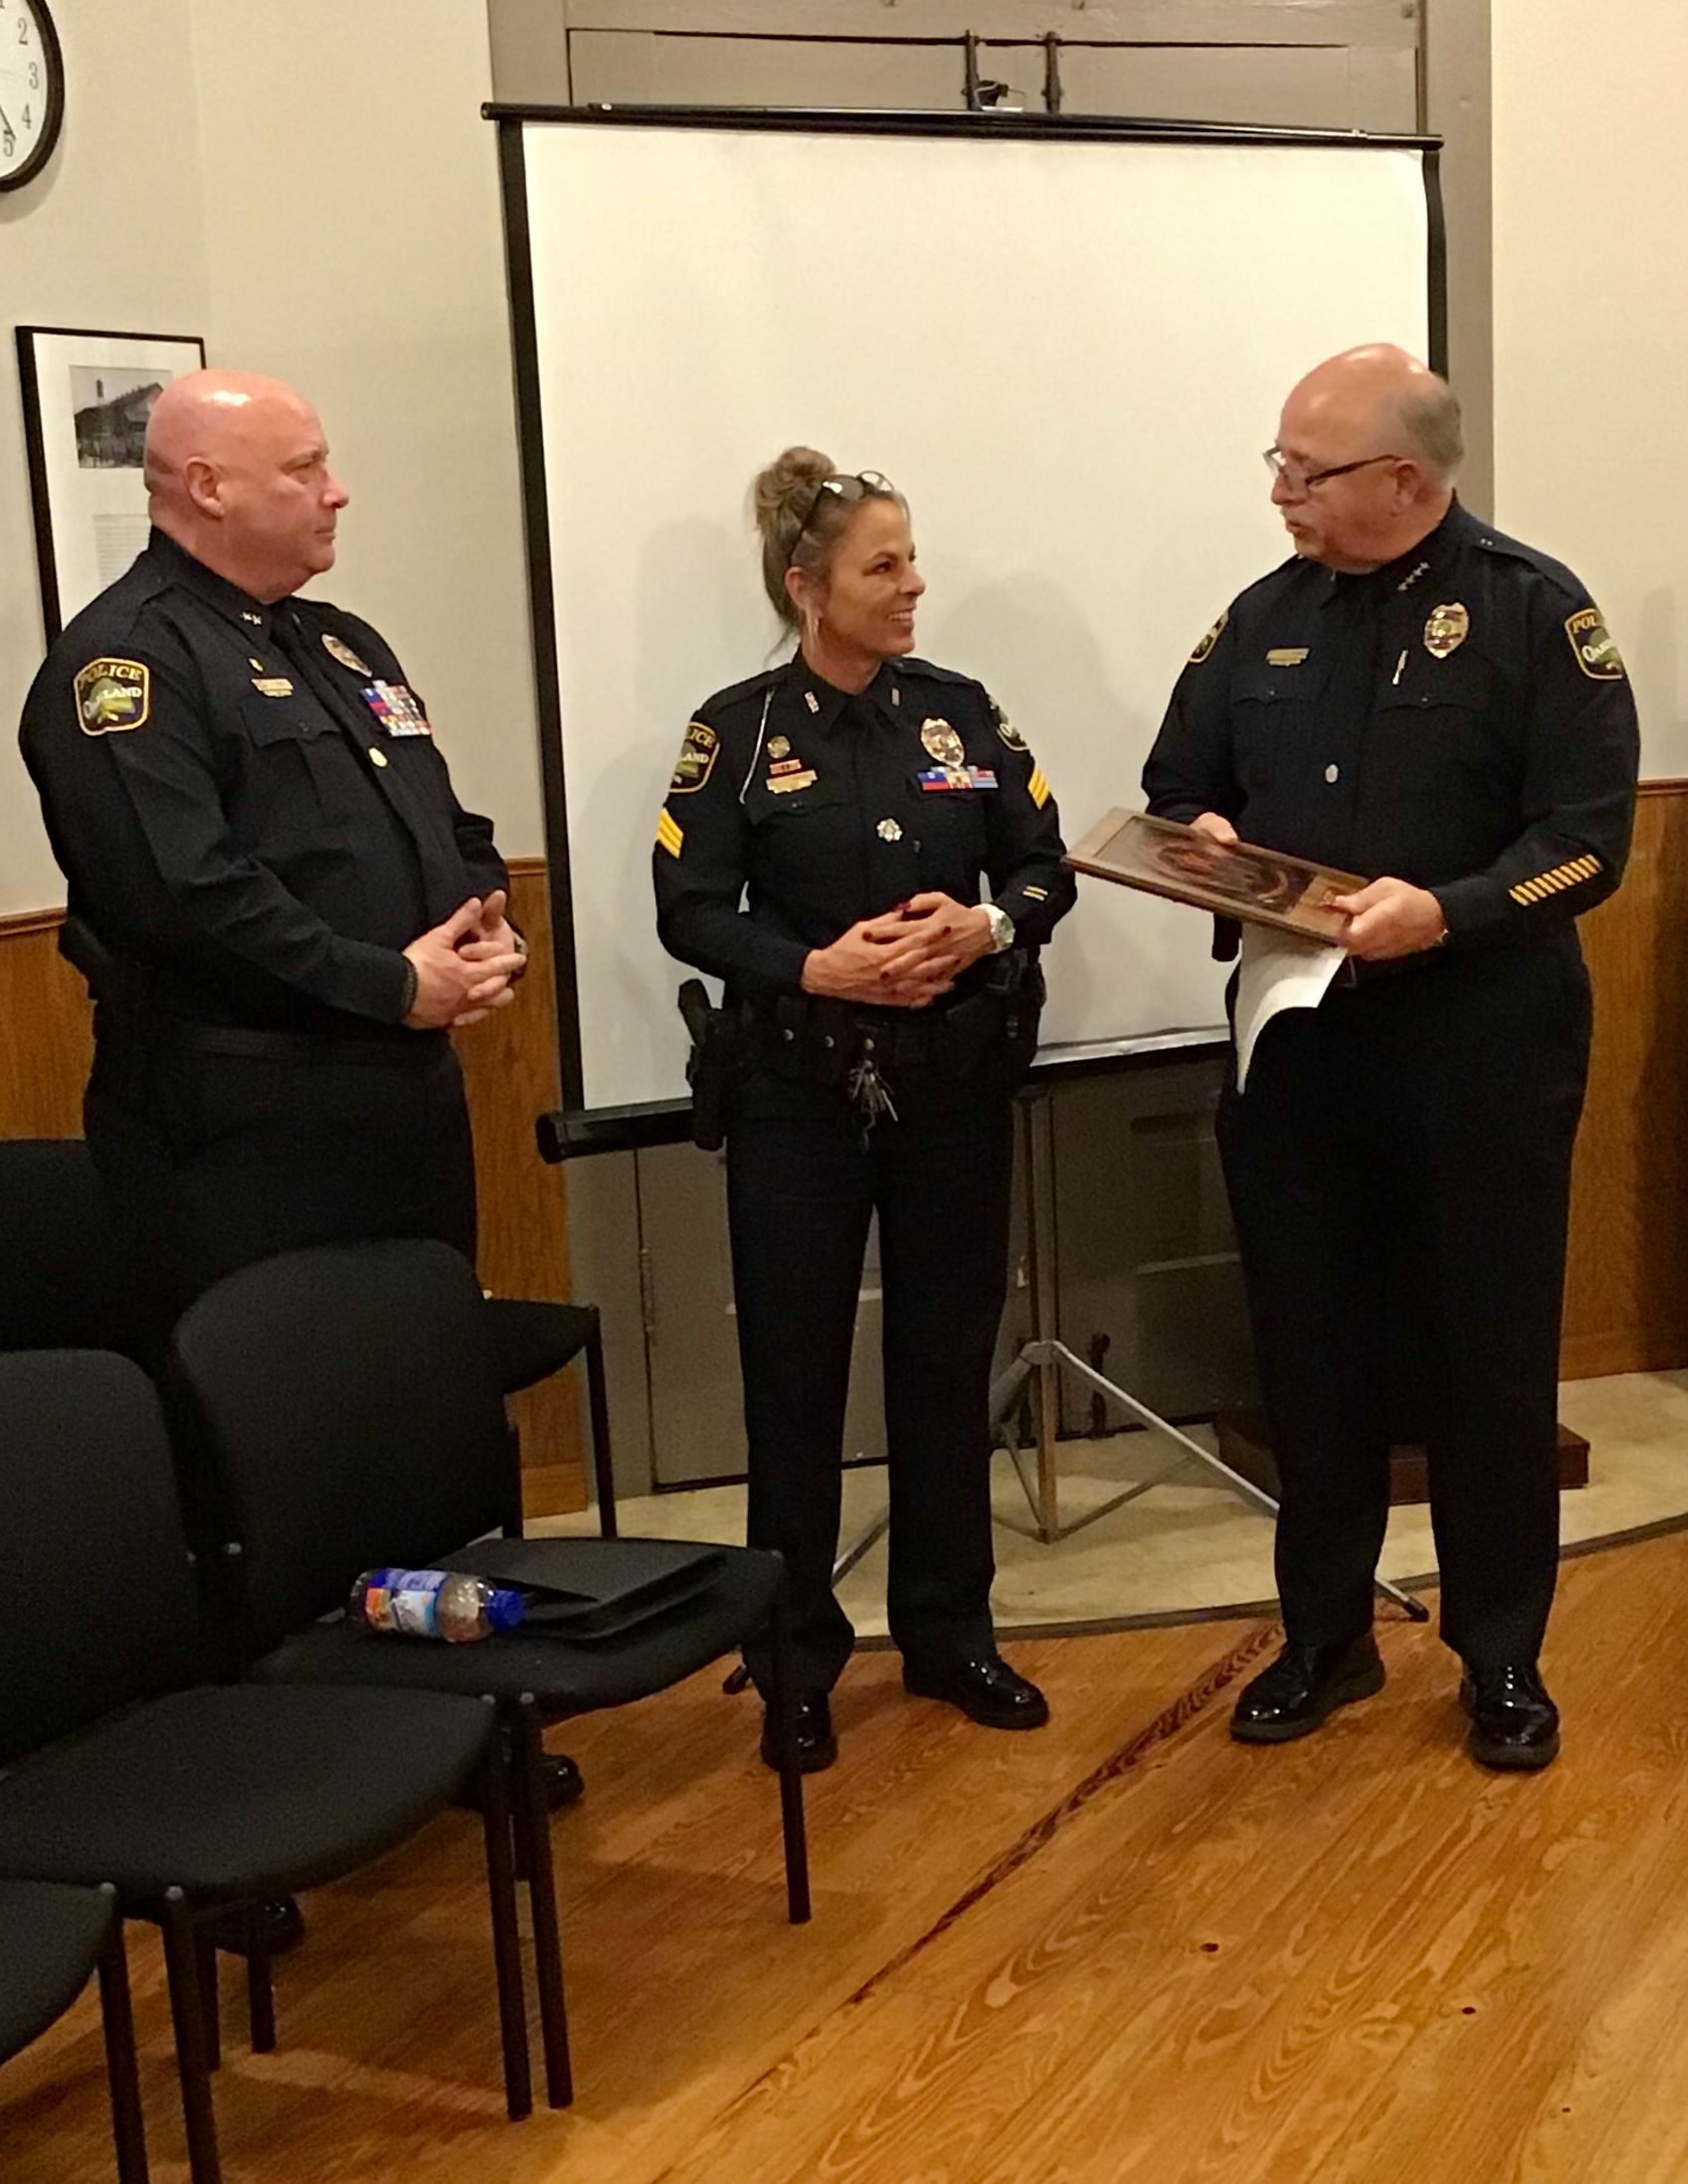 Chief Thomas presents plaque to Sergeant Campbell while Deputy Chief Peek looks on